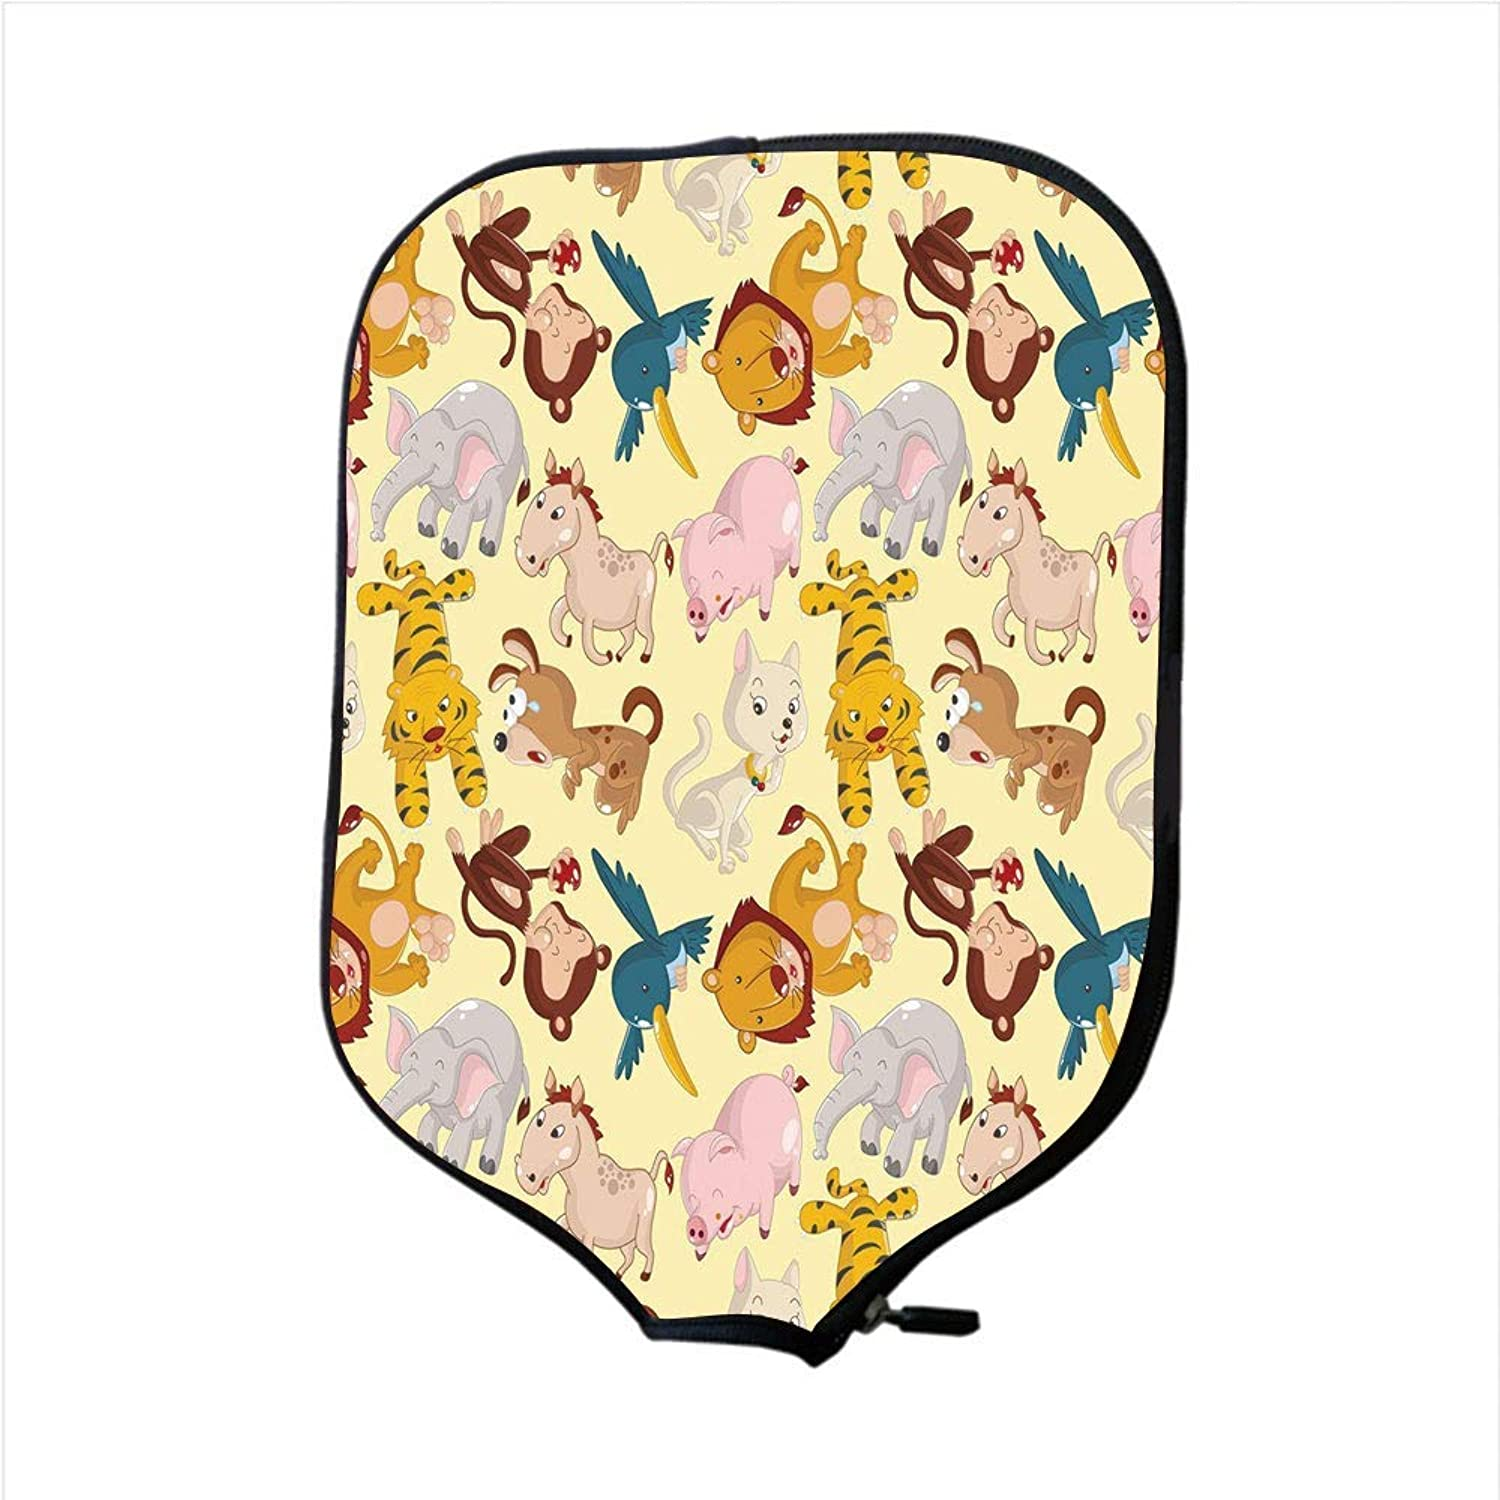 Fine Neoprene Pickleball Paddle Racket Cover Case,Nursery,Cartoon Animals Jungle Themed Design Monkey Pig Tiger Elephant Lion Horse Sparrow Decorative,Multicolor,Fit for Most Rackets